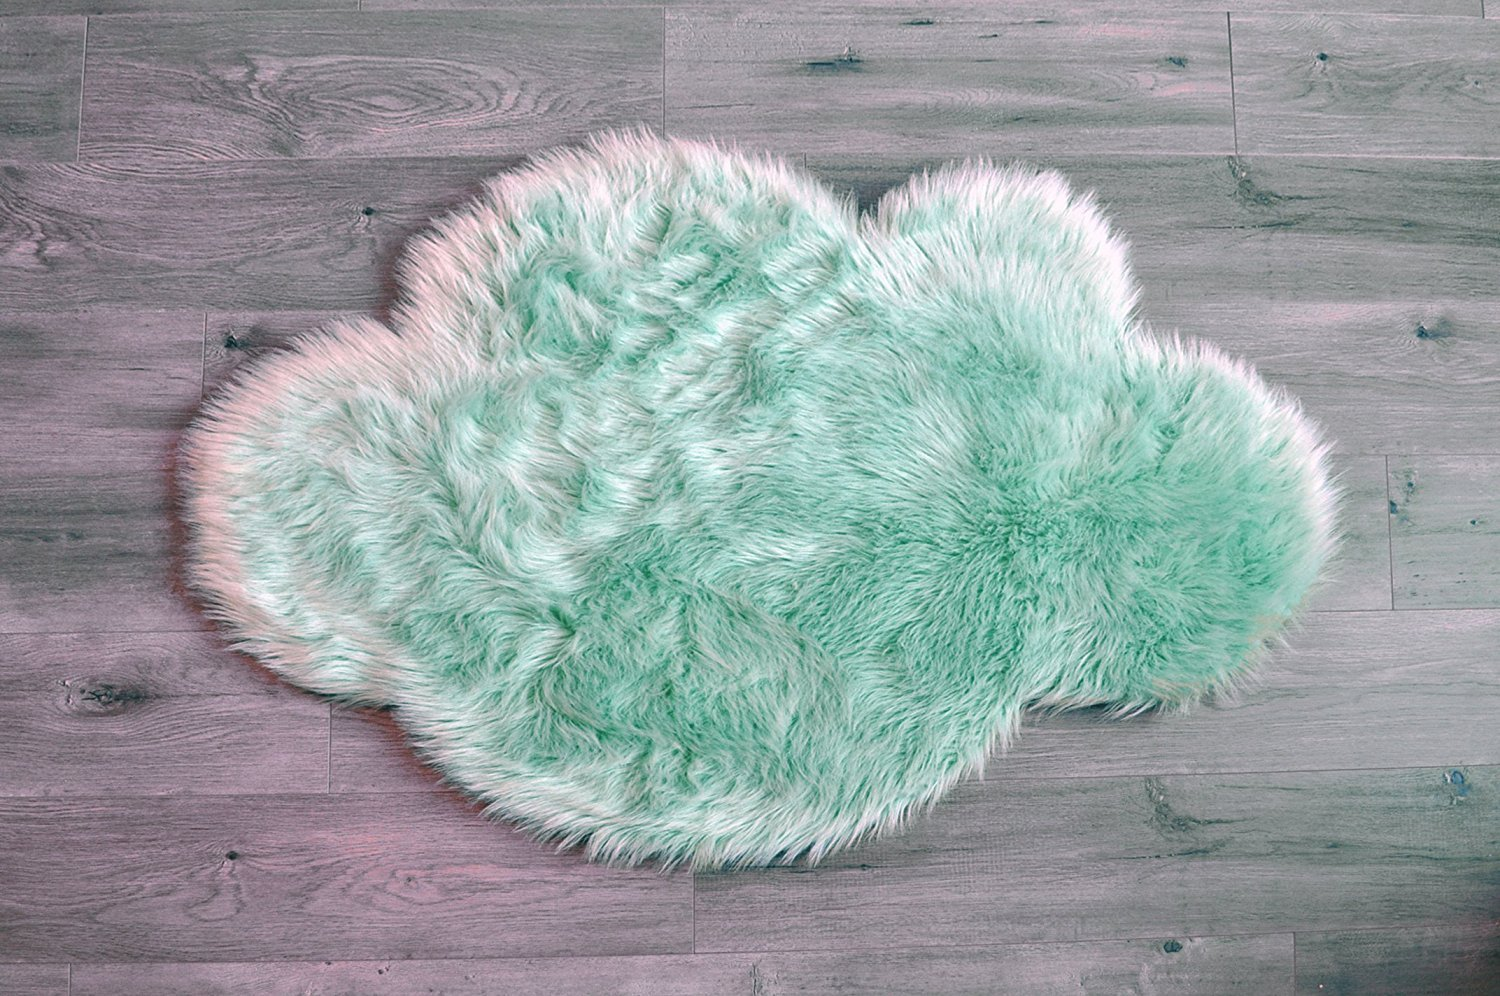 2 7 x 3 7 Soft and silky 2/' 7 x 3/' 7 - Mint Cloud KROMA CARPETS playroom - Mint Cloud playroom Perfect for babys room Machine Washable Faux Sheepskin Mint Cloud Area Rug 32 x 44 nursery